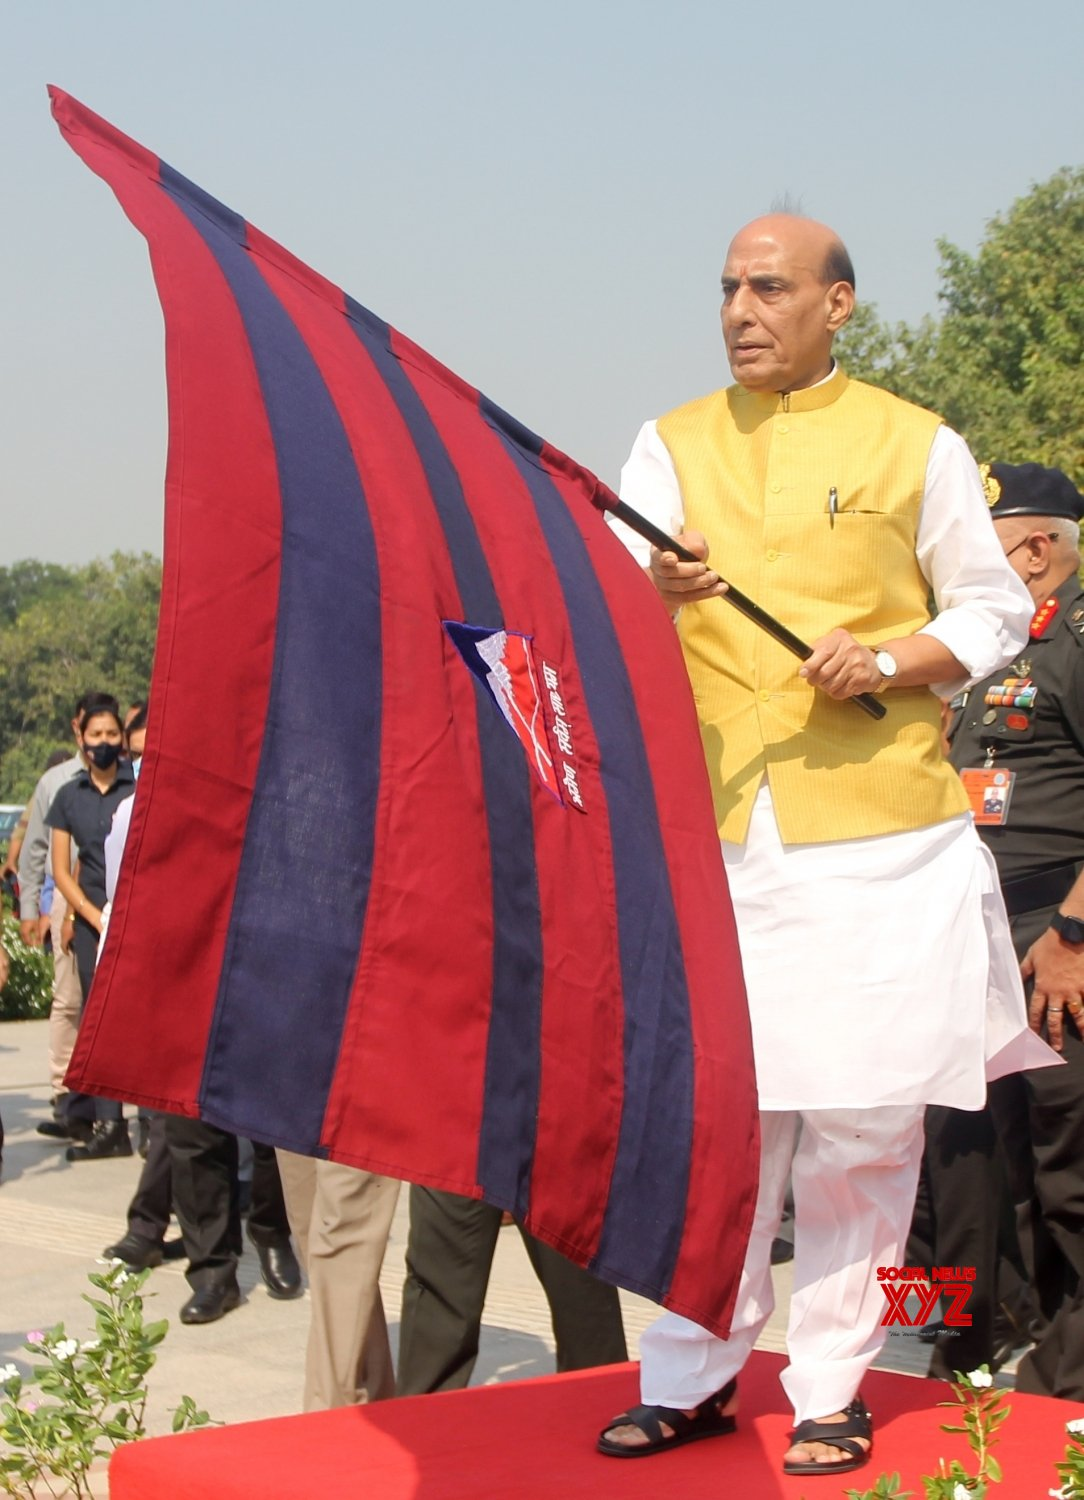 New Delhi: Union Defence Minister Rajnath Singh Flags off Border Road Organization(BRO) motorcycle expedition #Gallery